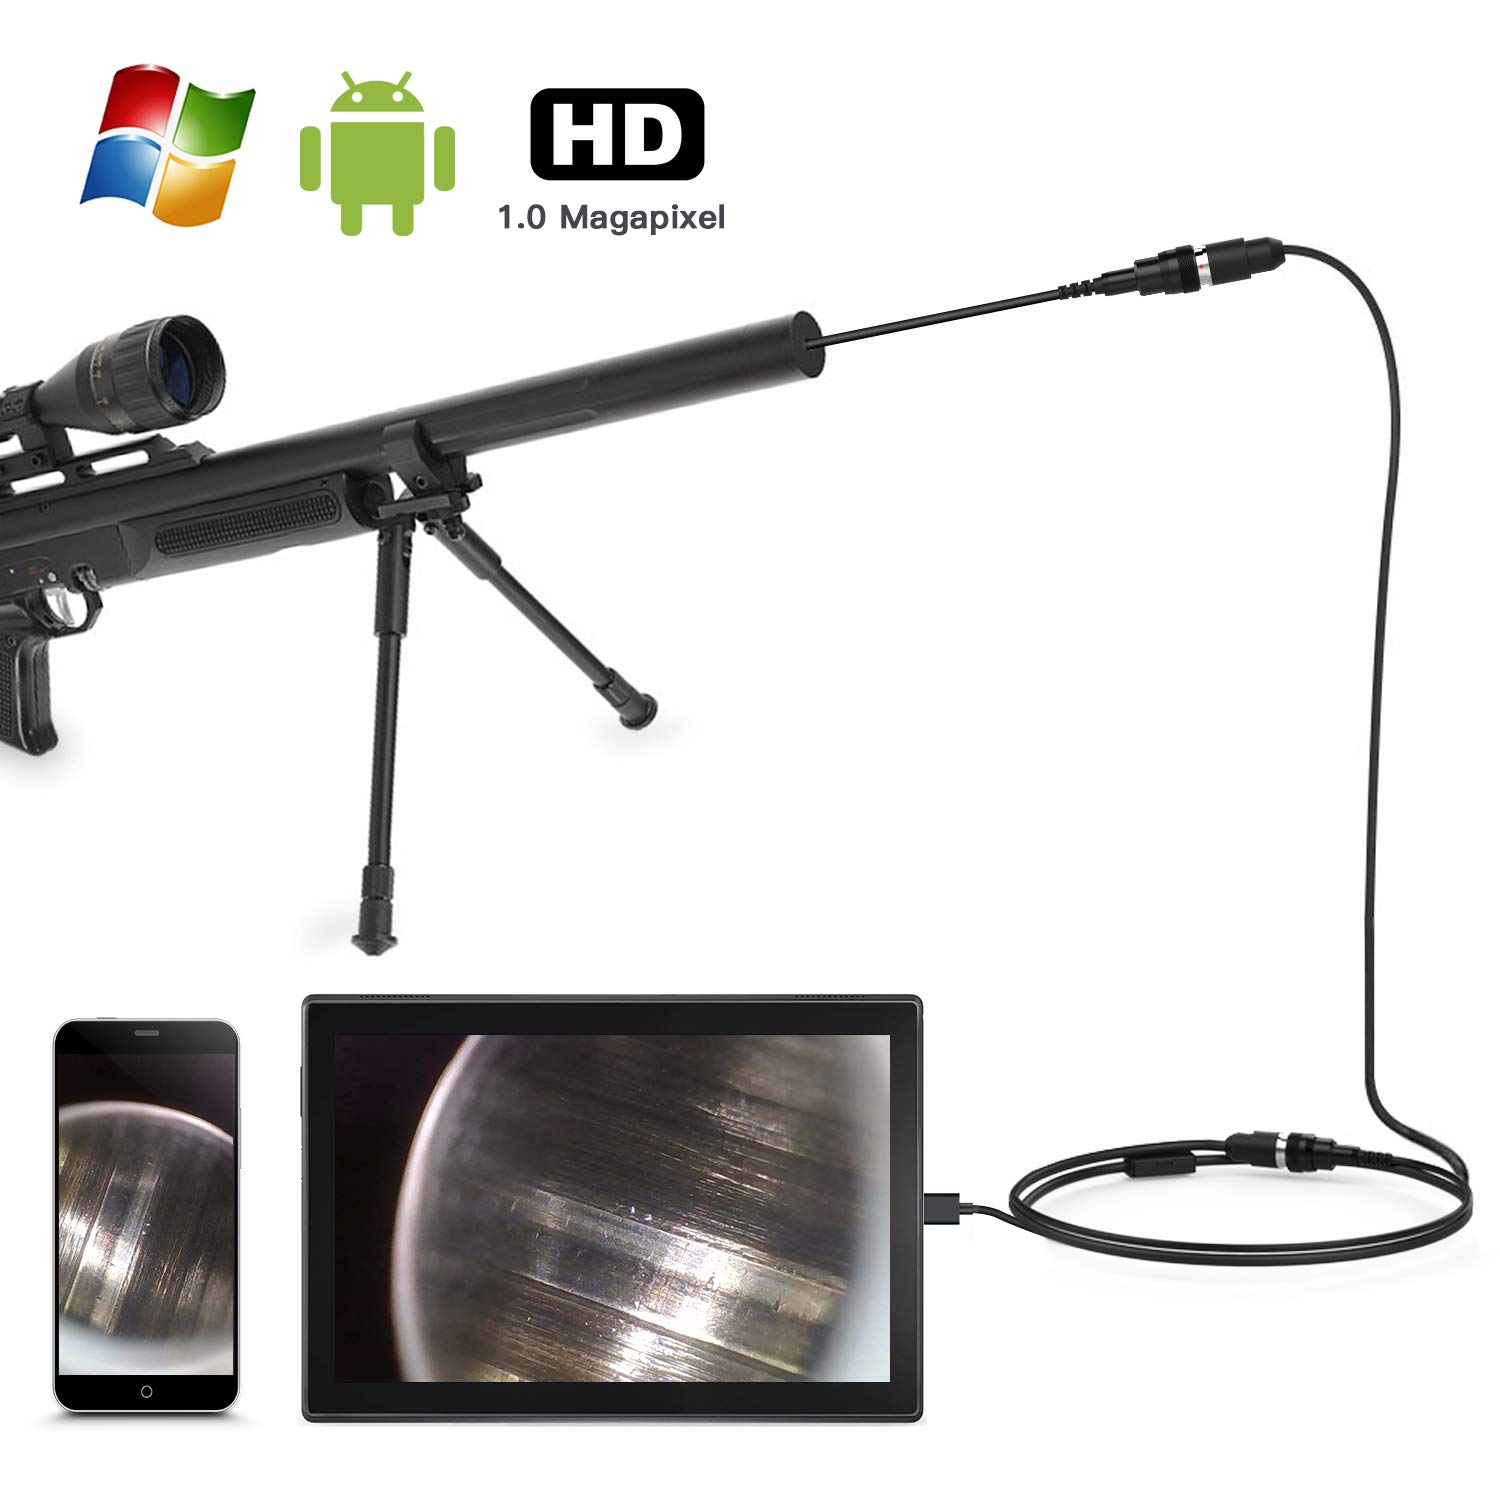 Teslong Rifle Borescope, Short Focus Gun Barrel Camera with Side-View Mirror.195 inches Caliber for All Barrel Inspection, Compatibale with Android, Mac, Windows, Linux, 1.0 Megapixel by Teslong